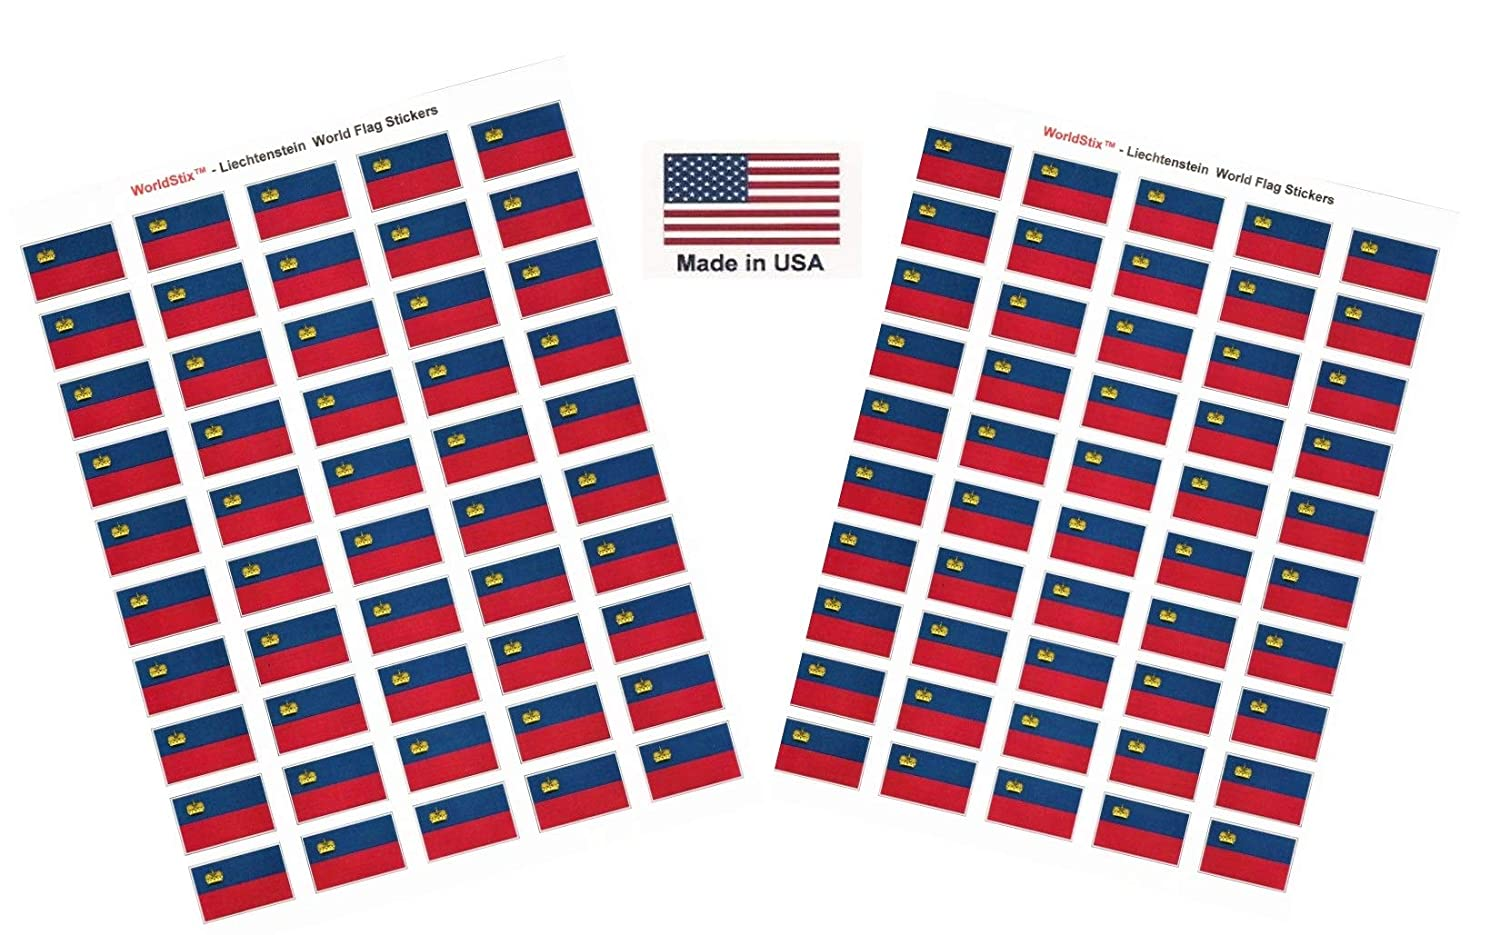 Made in USA 100 Country Flag 1.5 x 1 Self Adhesive World Flag Scrapbook Stickers 100 International Sticker Decal Flags Total Two Sheets of 50 Germany